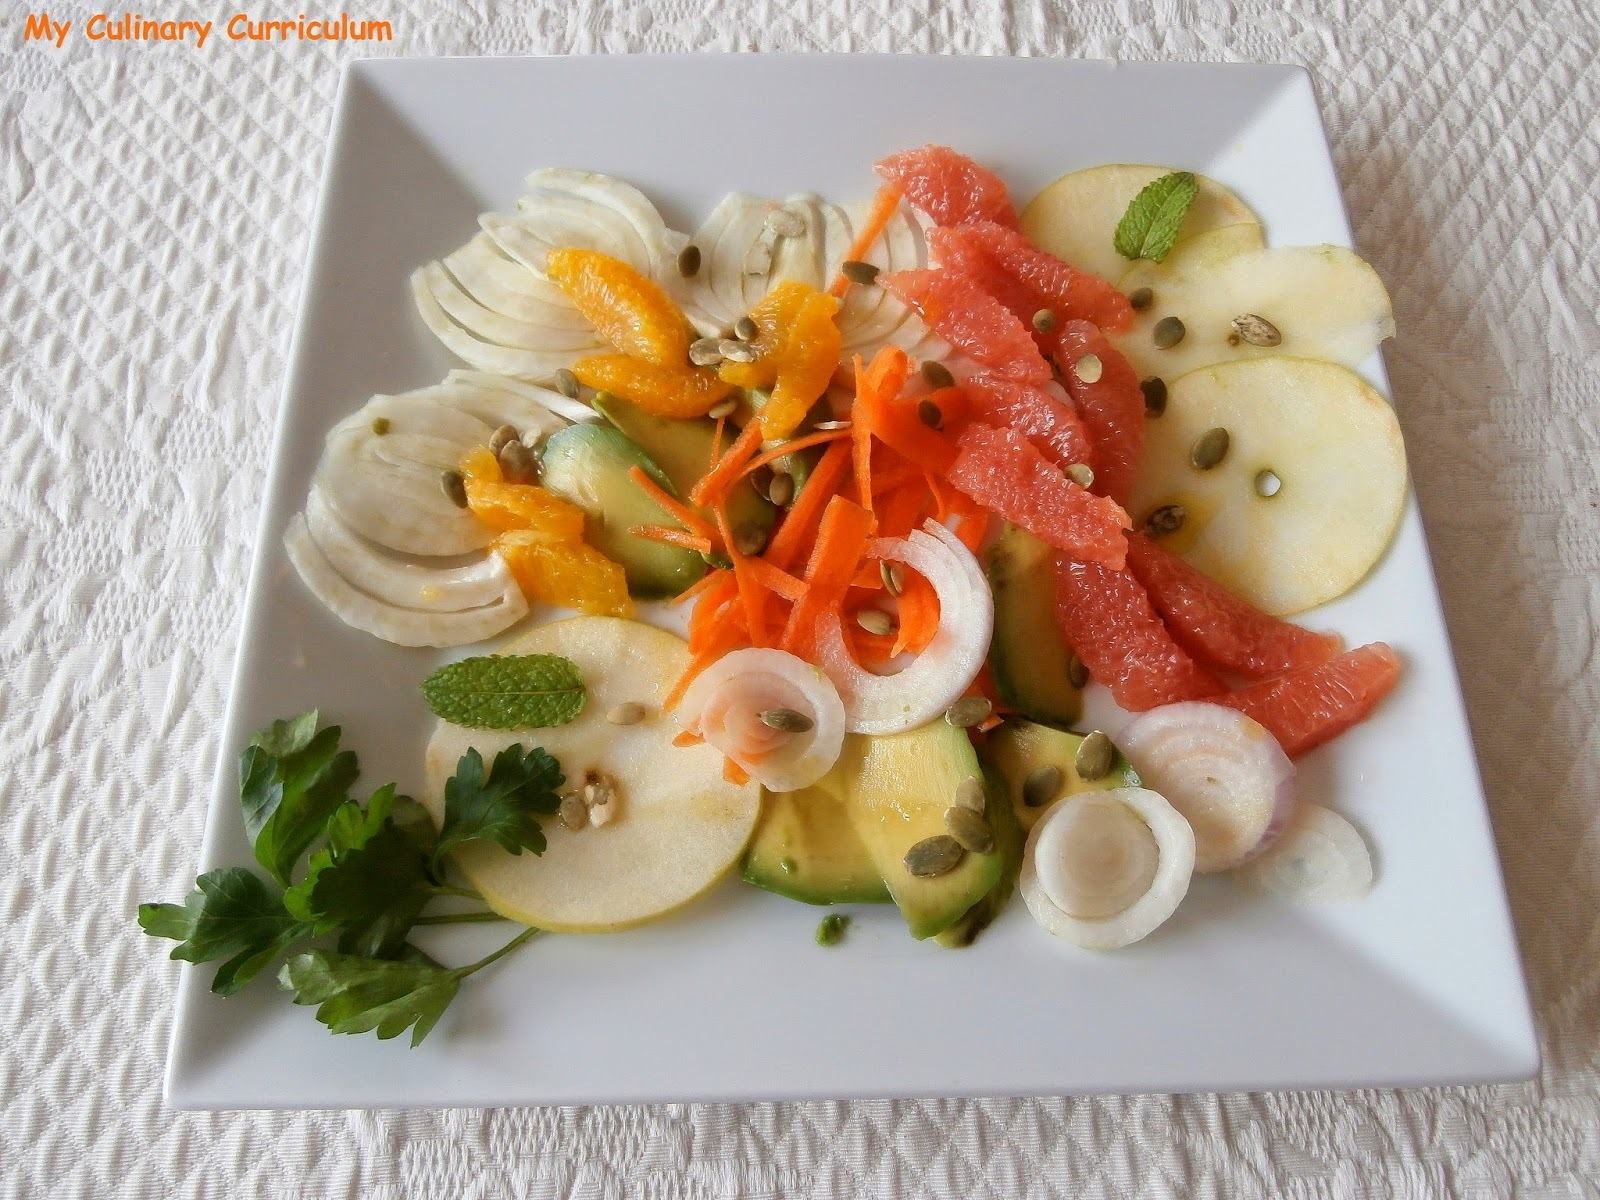 Salade orange, pamplemousse, avocat, pomme, fenouil, carottes, oignons rouges (Orange salad, grapefruit, avocado, apple, fennel, carrots, red onions)